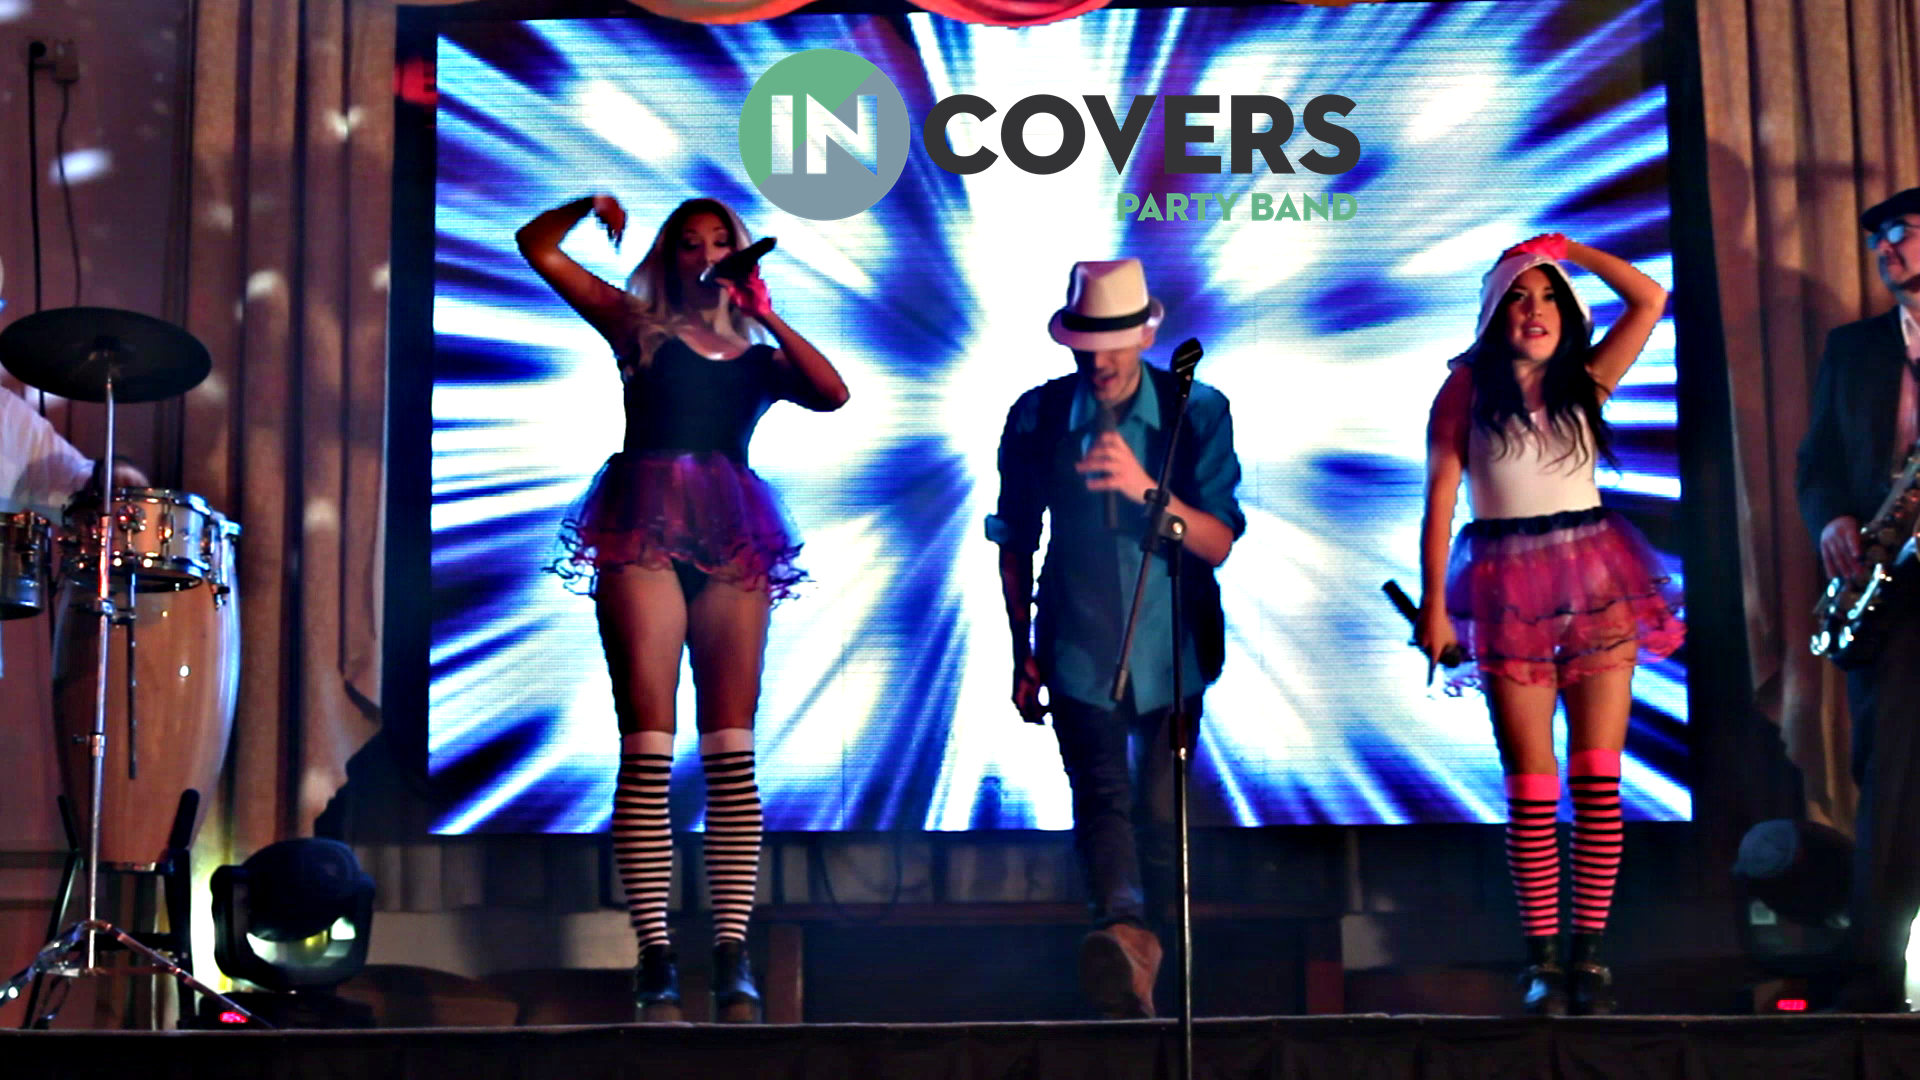 Incovers 13